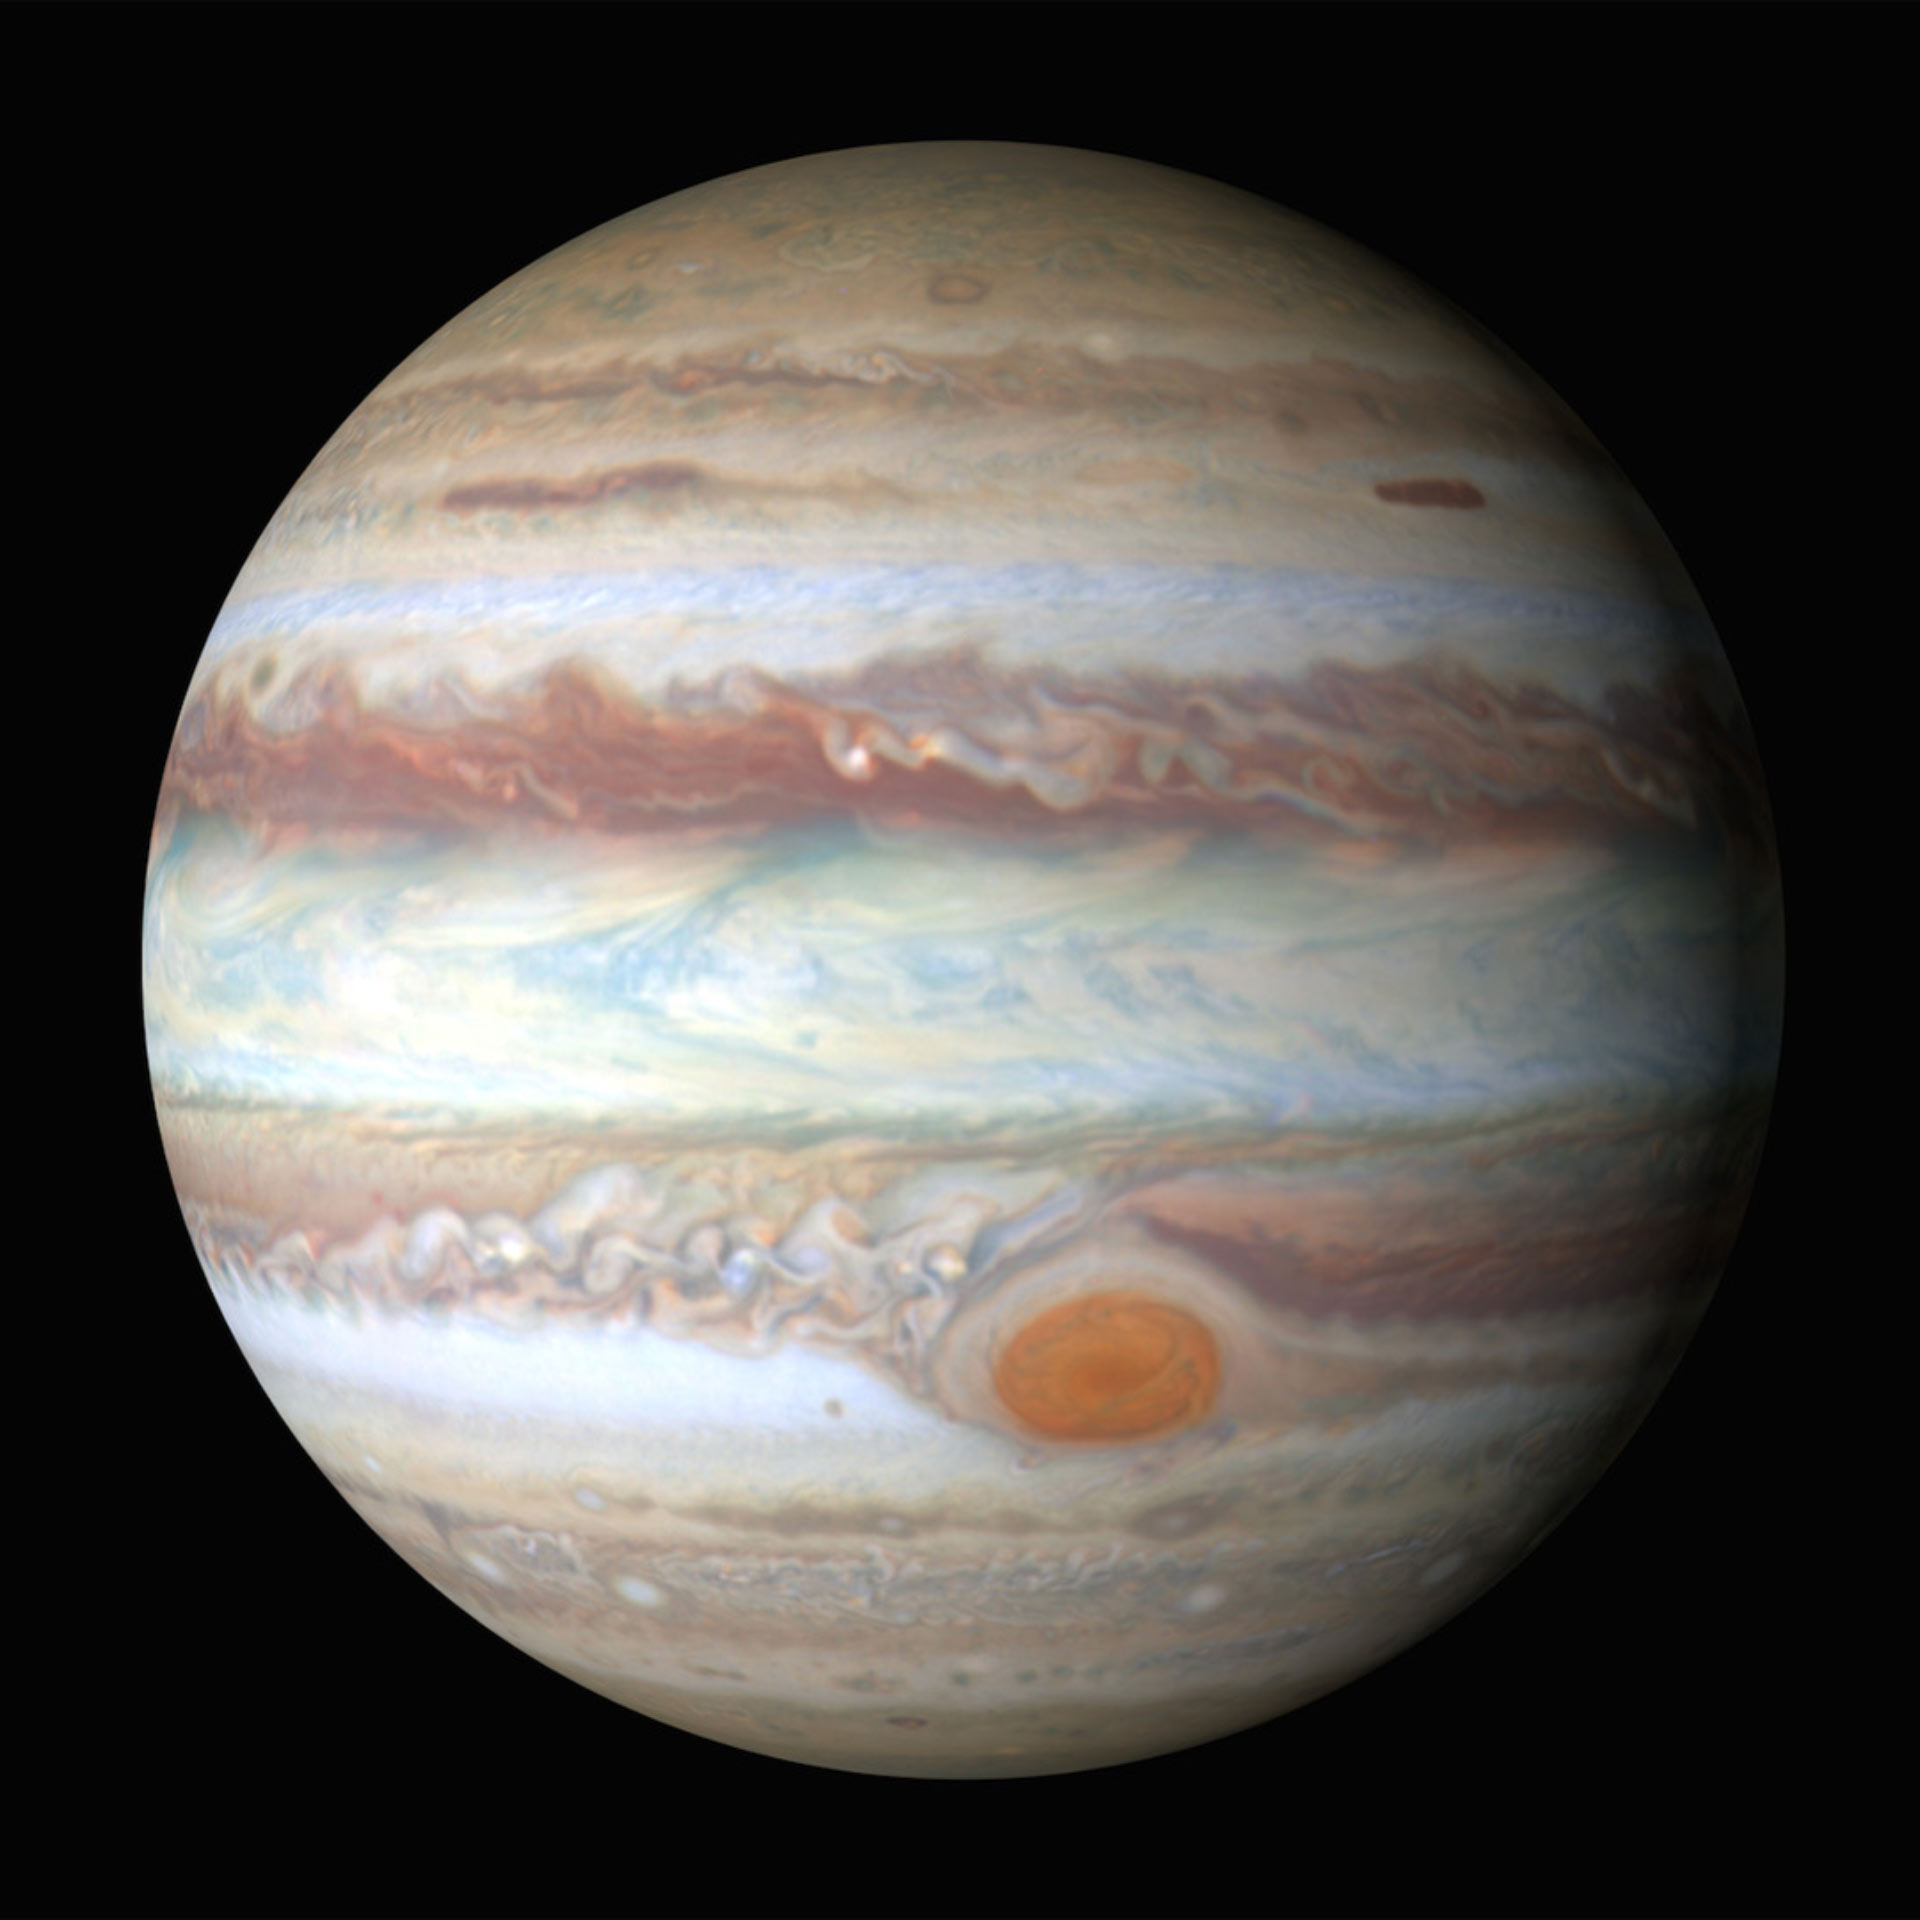 Real Pictures Of Jupiter The Planet Teasing Out the...